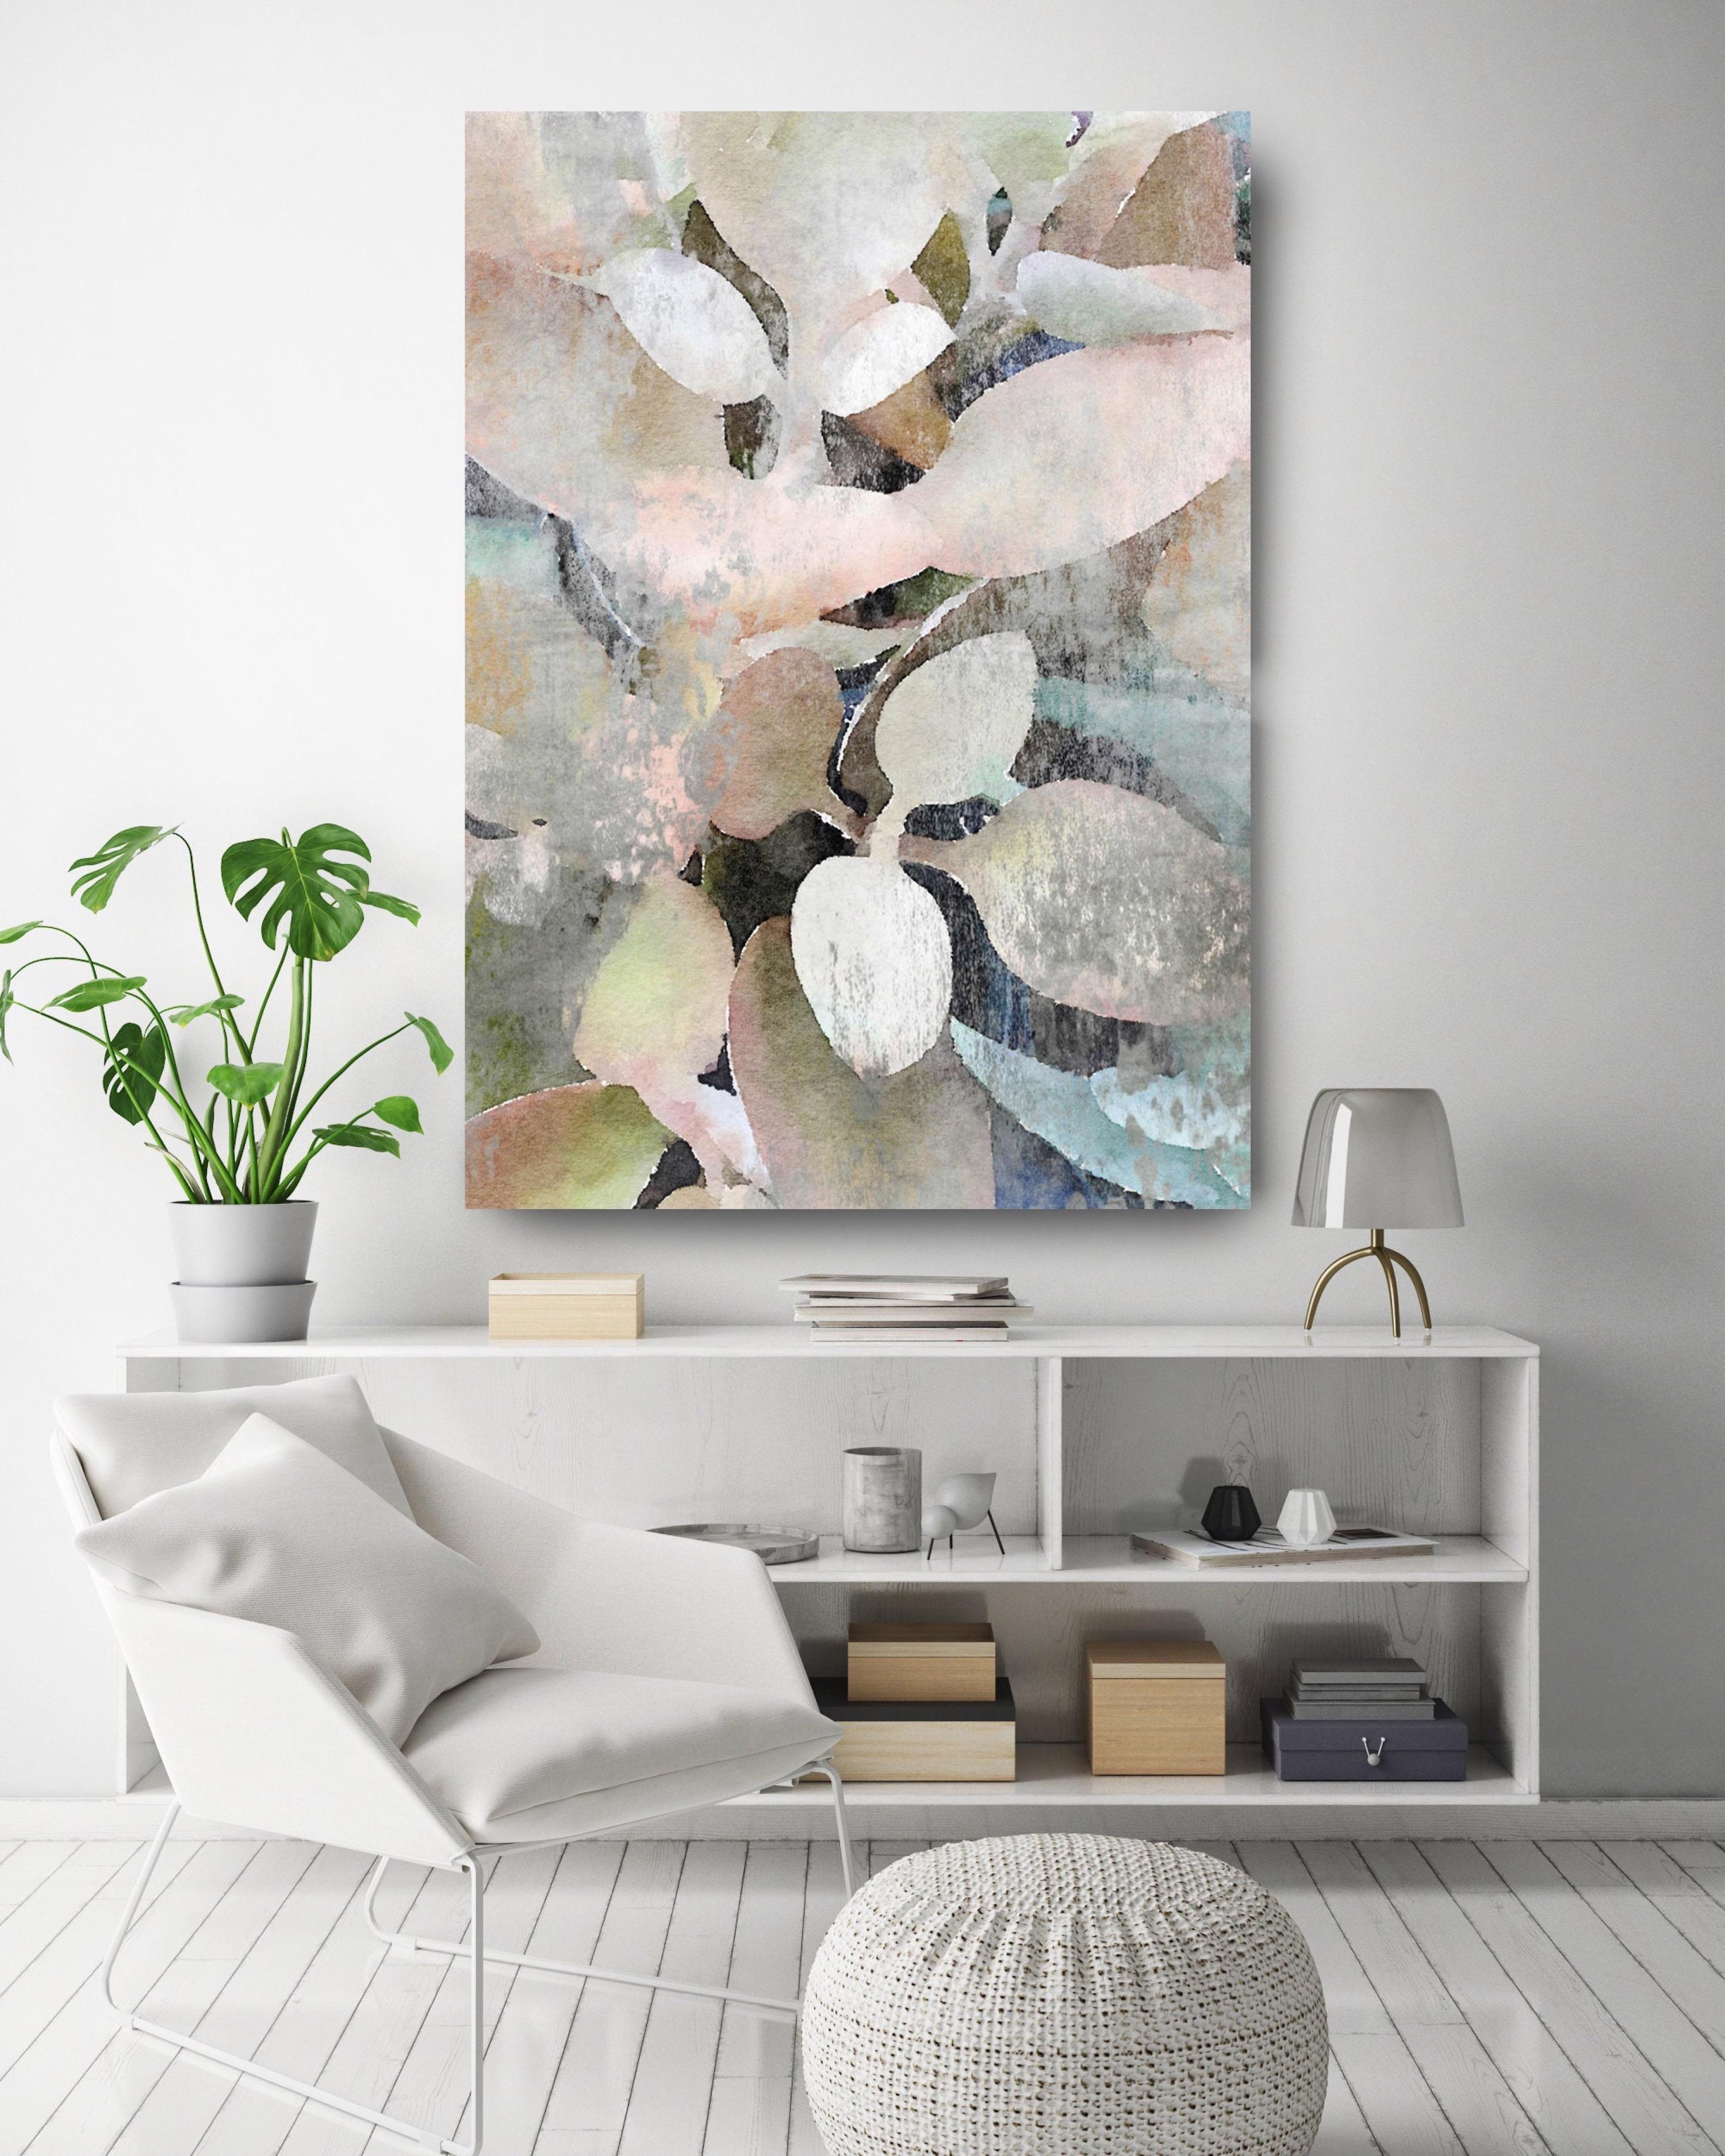 Rustic Nature Pink Teal Landscape Painting Hand Embellished Giclee on Canvas